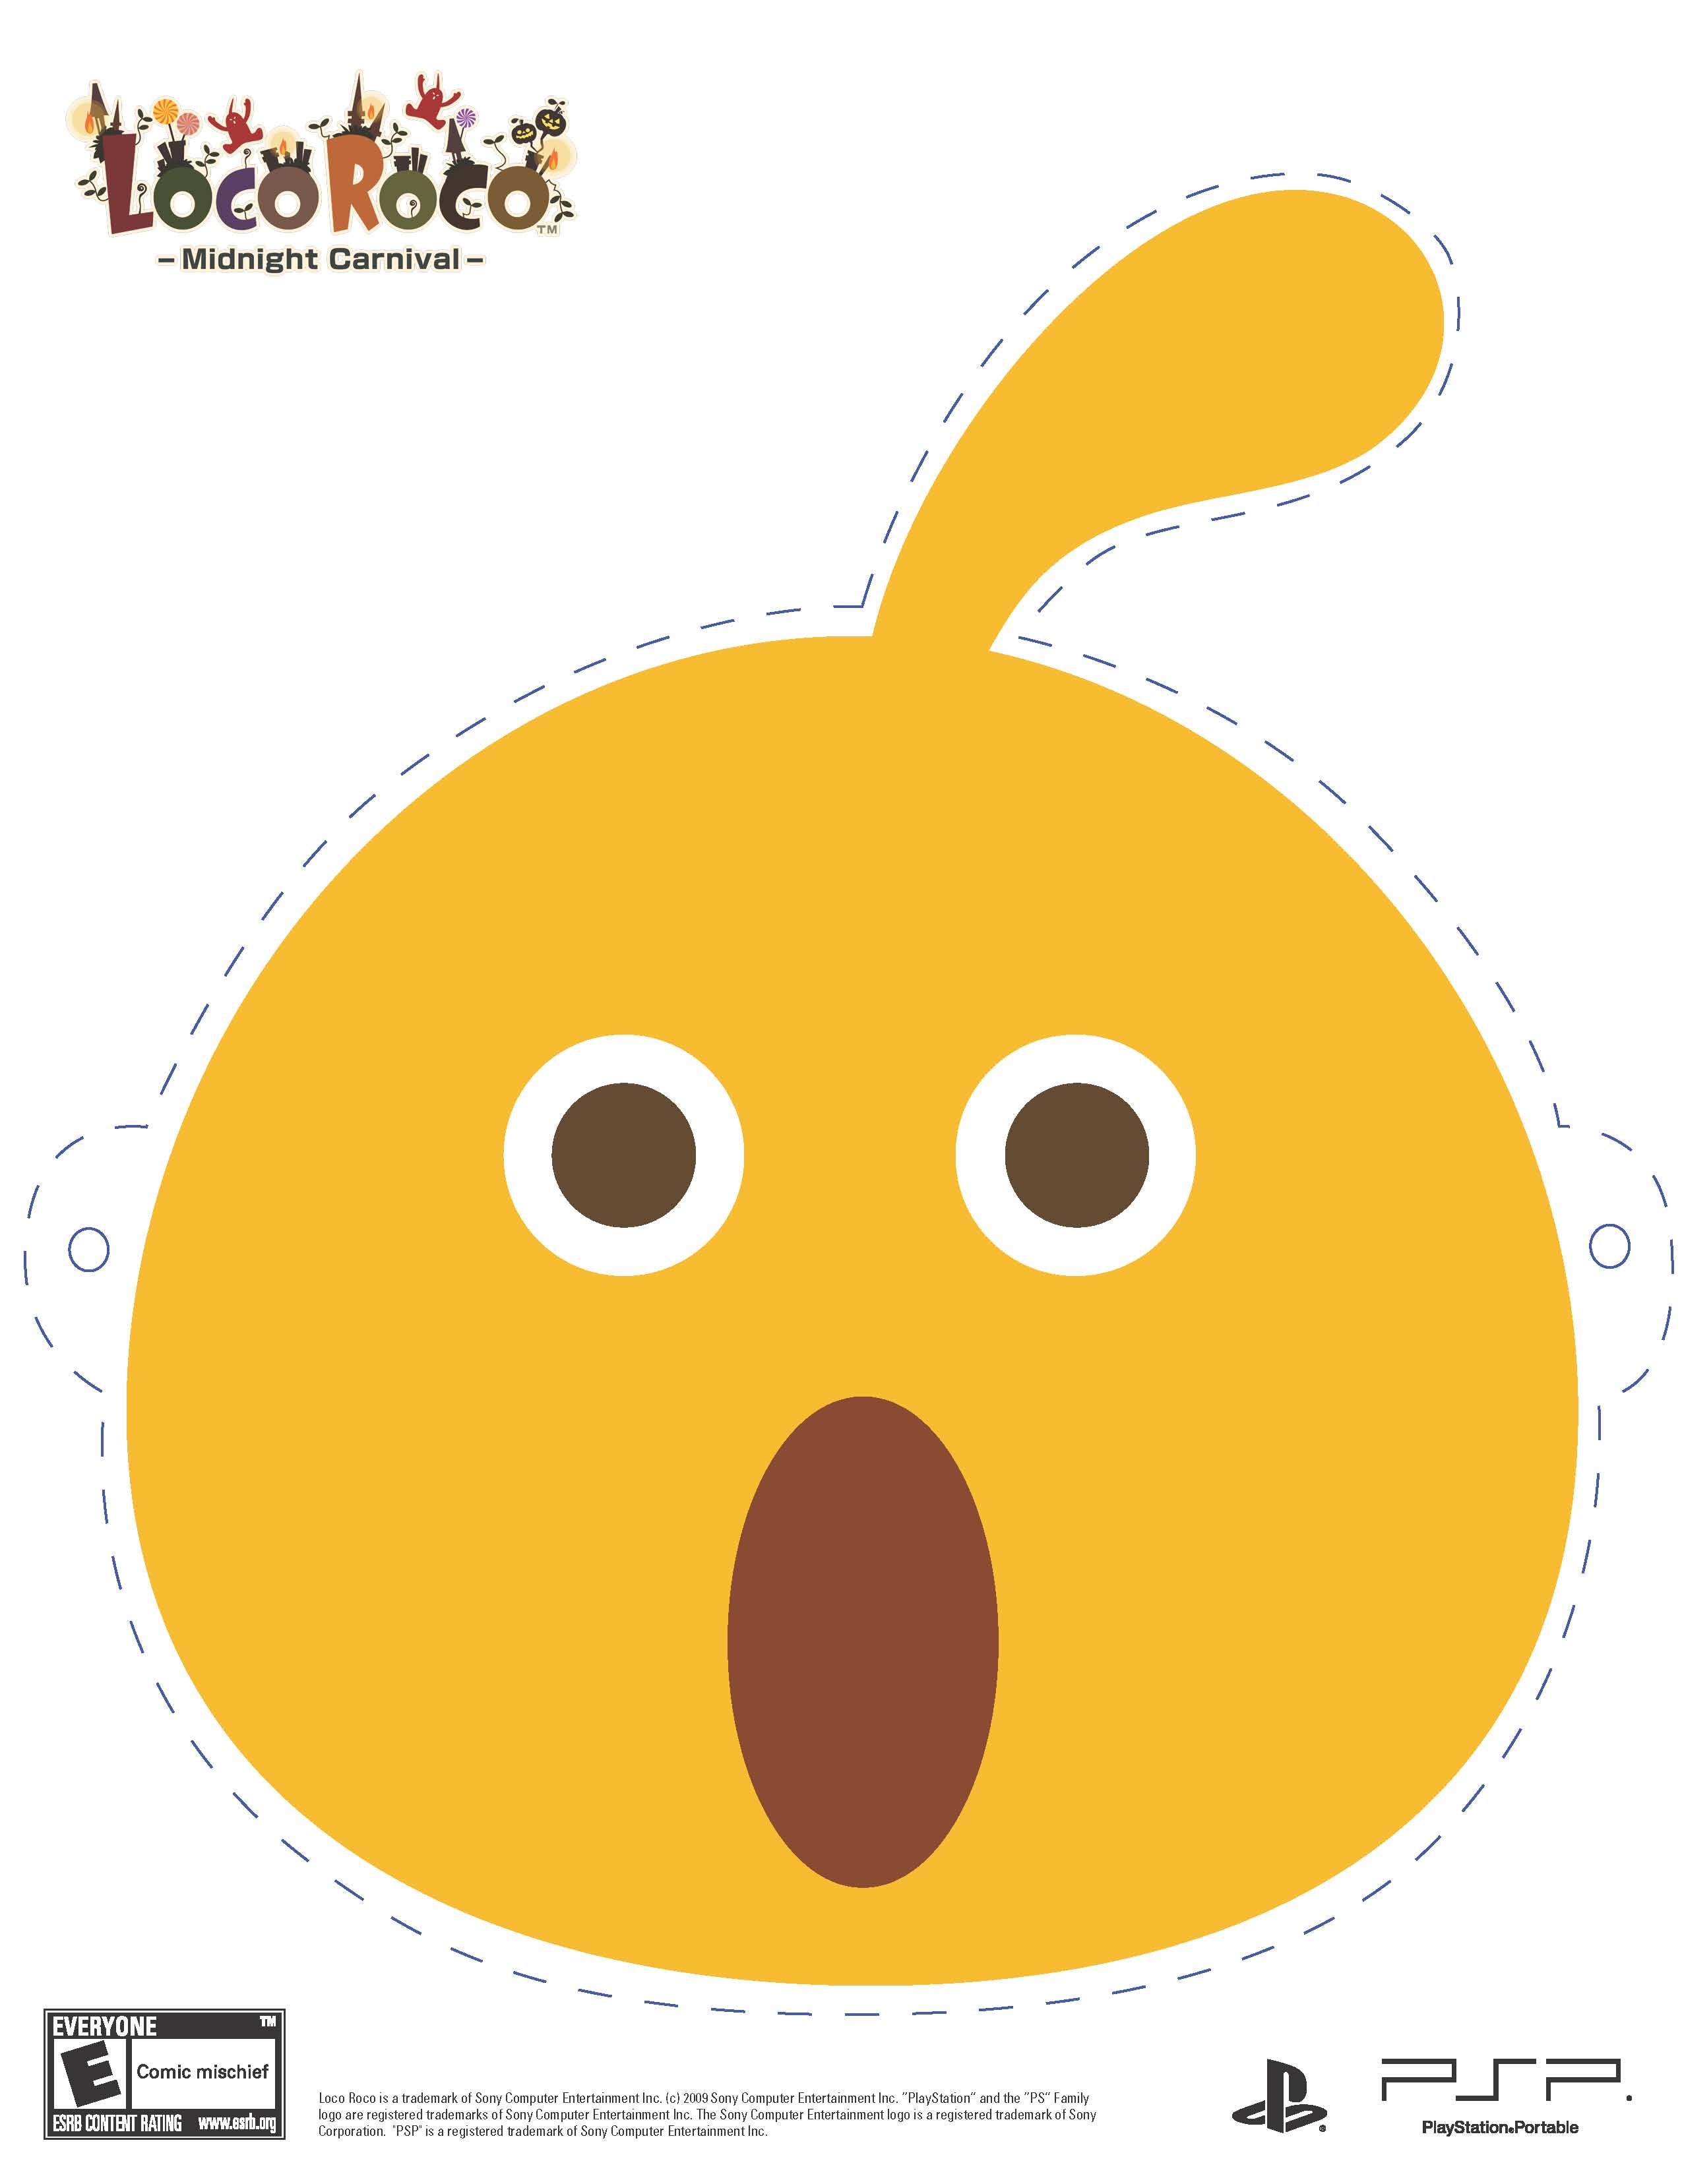 Download locoroco 2 psp iso torrent xilusarchitects.